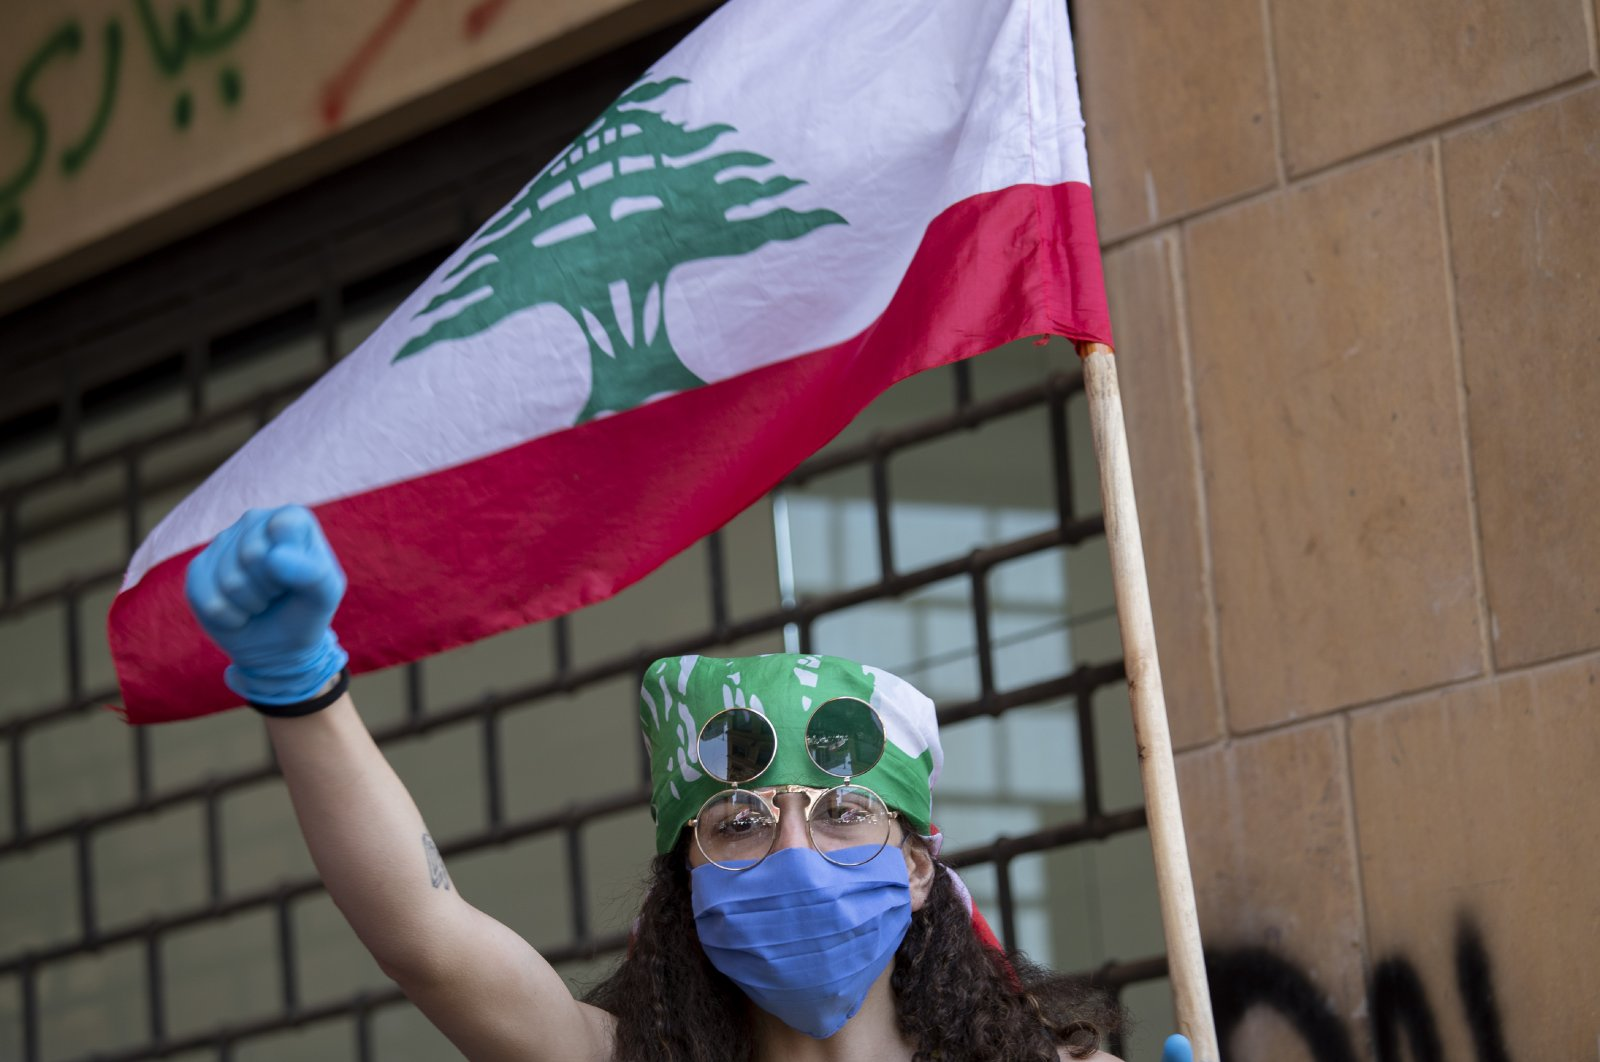 An anti-government protester shouts slogans, while wearing a mask to help curb the spread of the coronavirus, during ongoing protests in front of the Ministry of Economy, in downtown Beirut, Lebanon, May 18, 2020. (AP Photo)